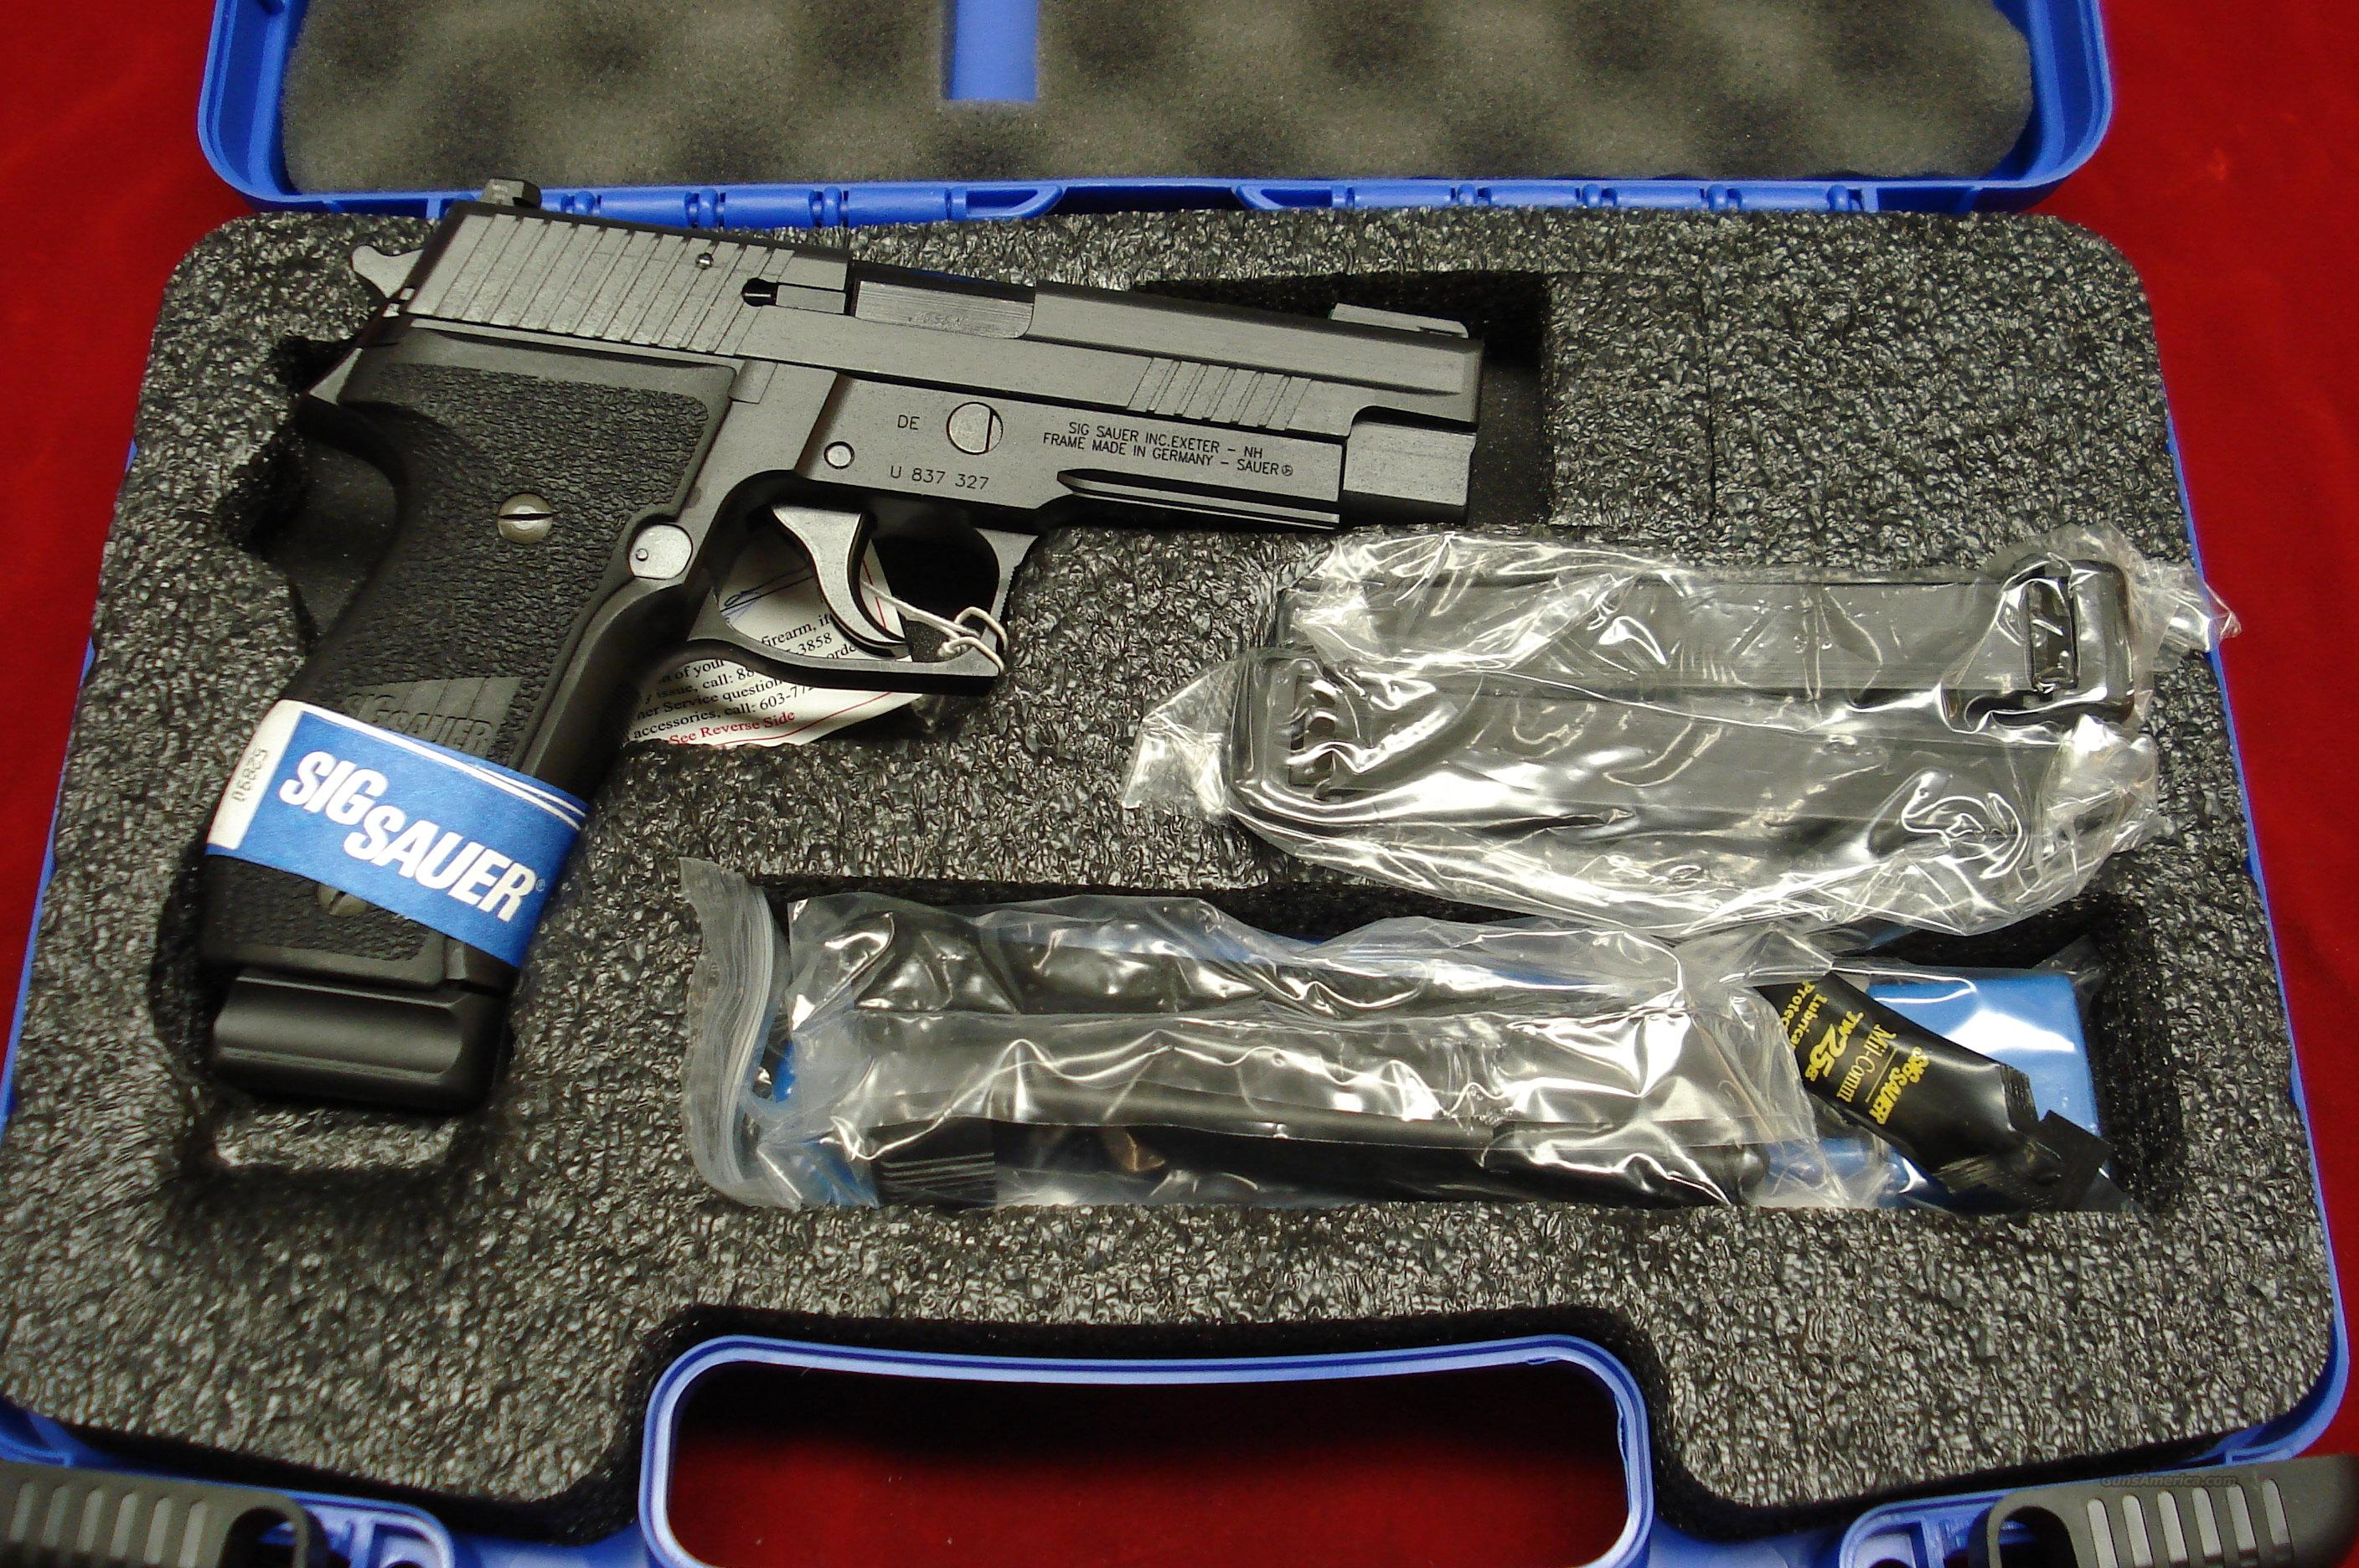 SIG SAUER P226 W/FOUR 15 ROUND MAGS. .40CAL. WITH NIGHT SIGHTS NEW  Guns > Pistols > Sig - Sauer/Sigarms Pistols > P226